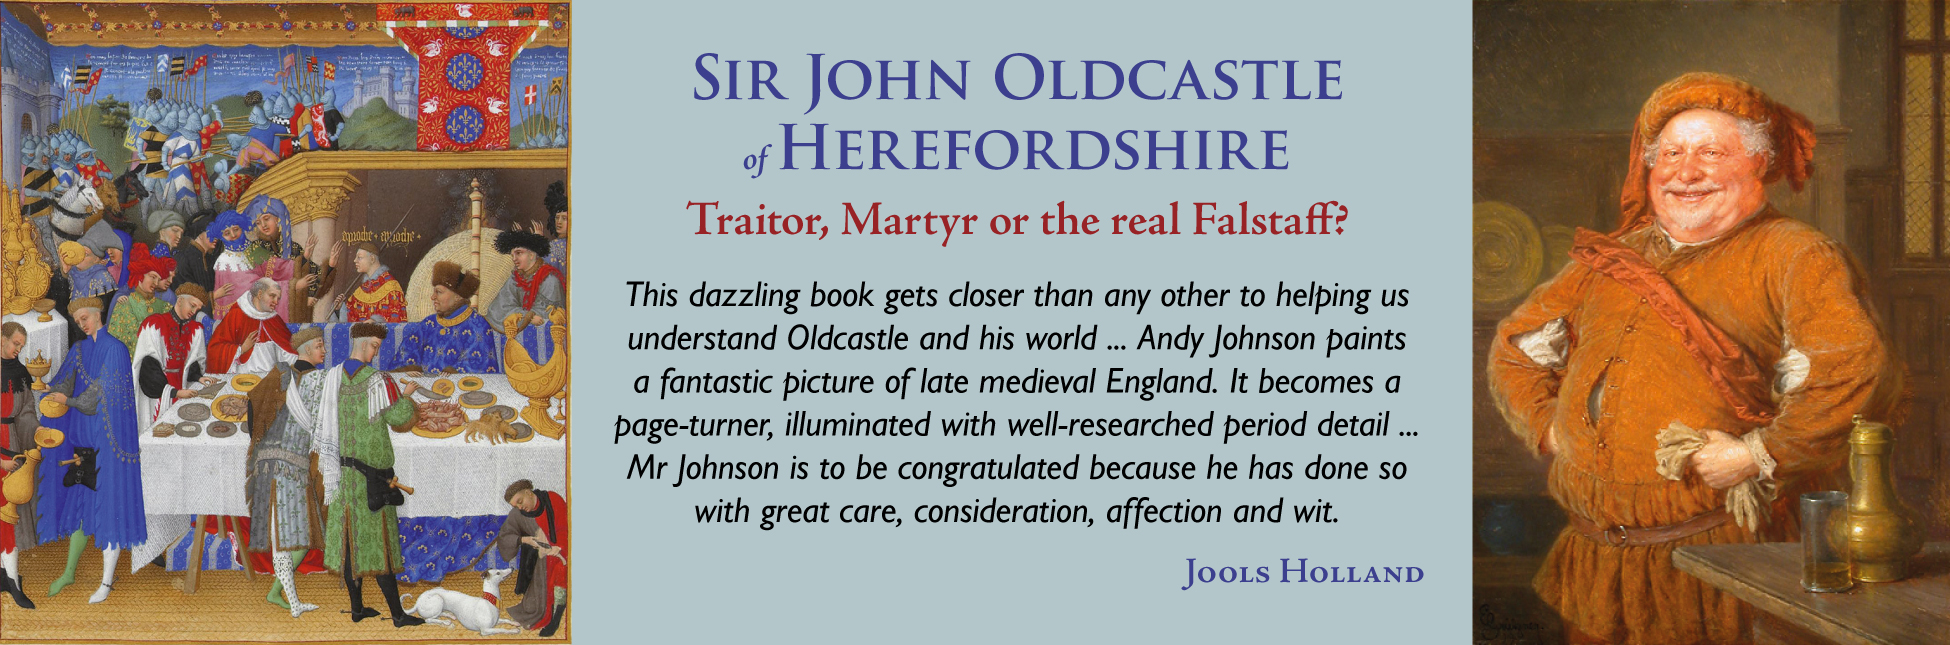 SIr John Oldcastle of Herefordshire banner